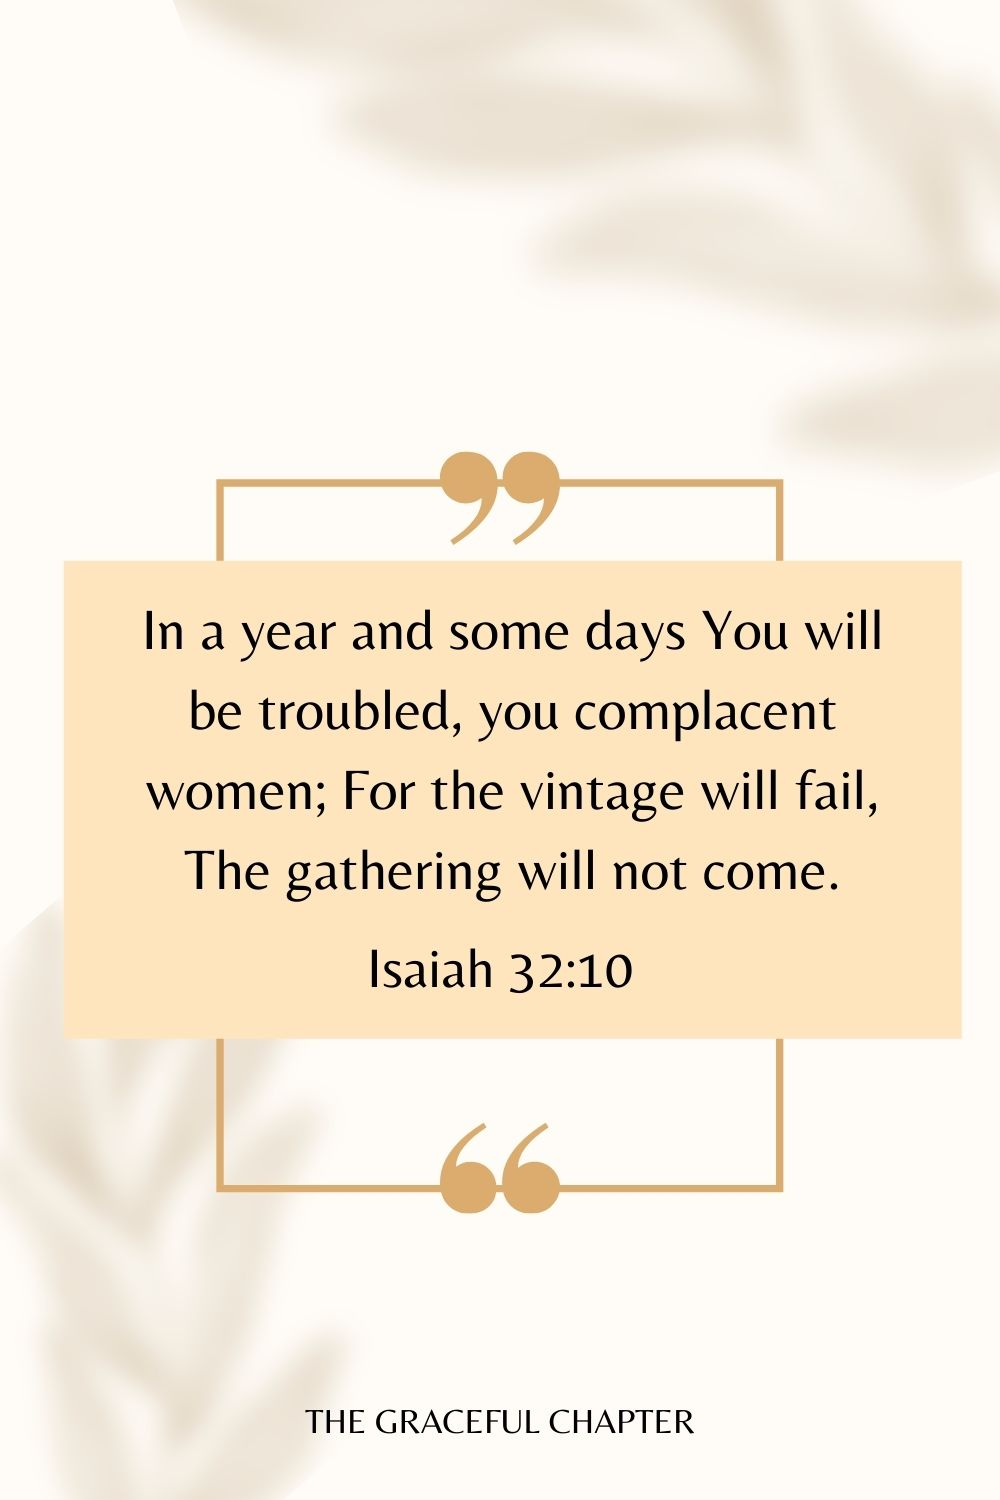 In a year and some days You will be troubled, you complacent women; For the vintage will fail, The gathering will not come. Isaiah 32:10